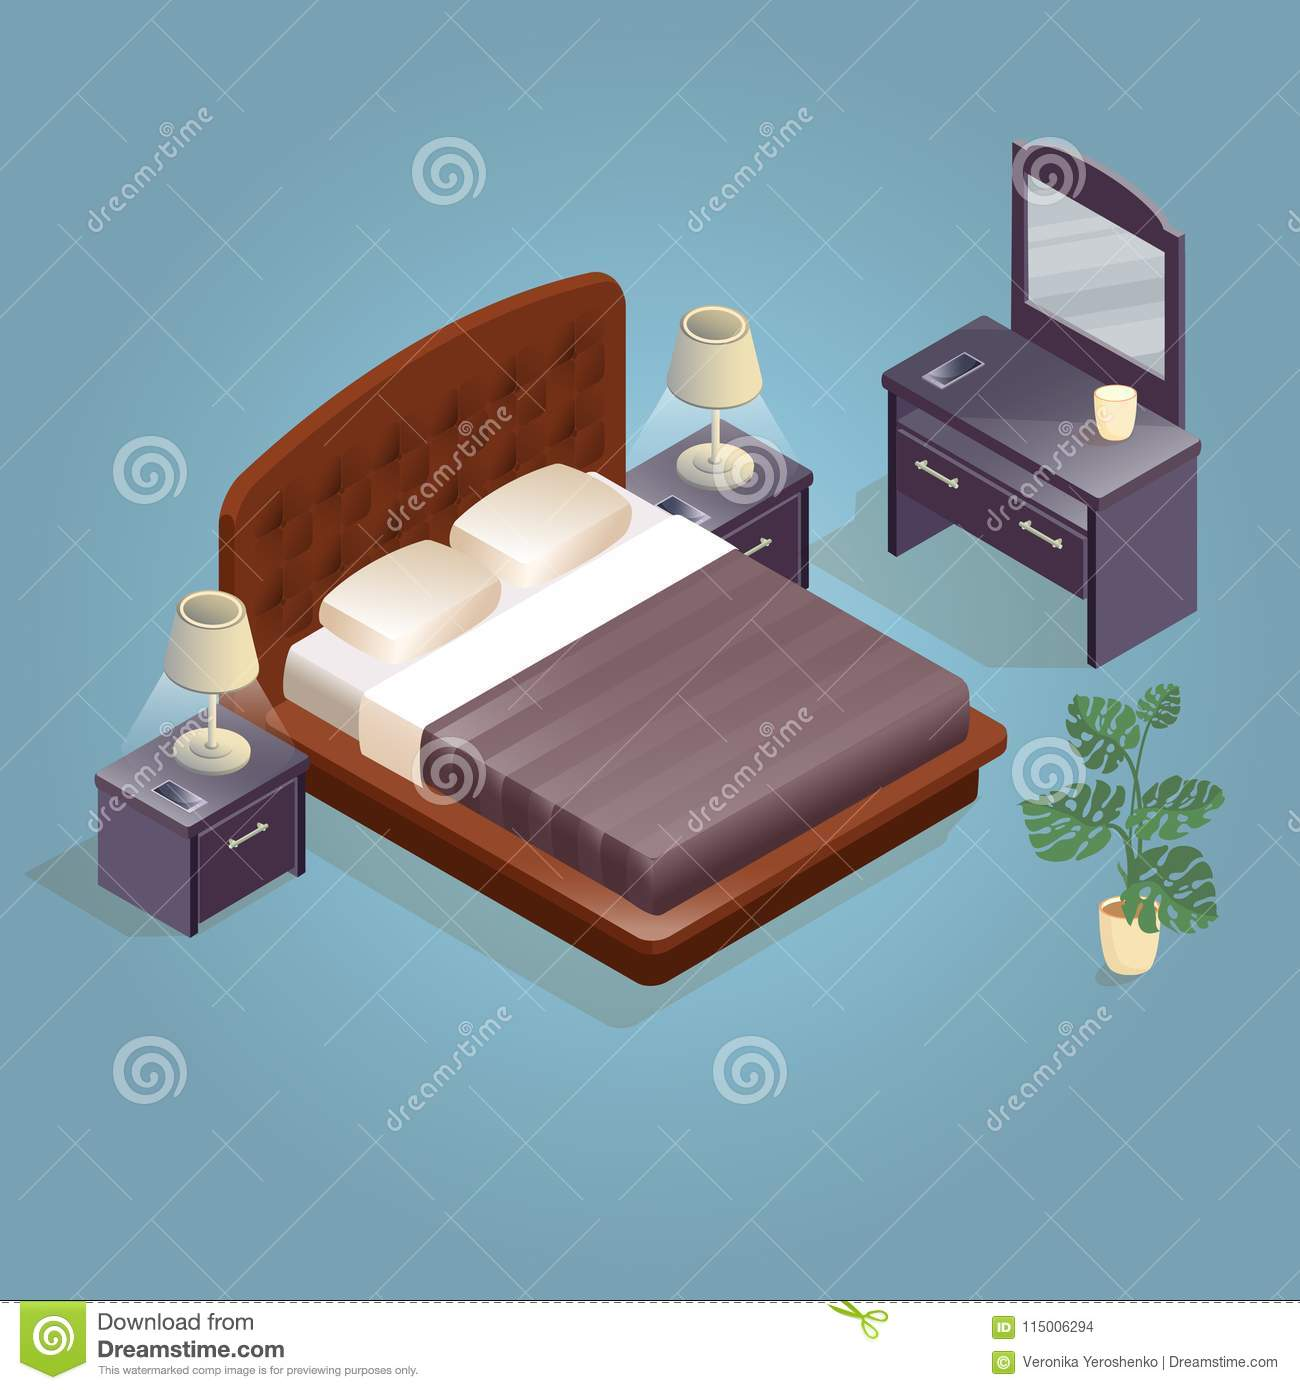 Picture of: Isometric Cartoon Double King Size Beds Isolated On Blue Stock Vector Illustration Of Isometry Headboard 115006294